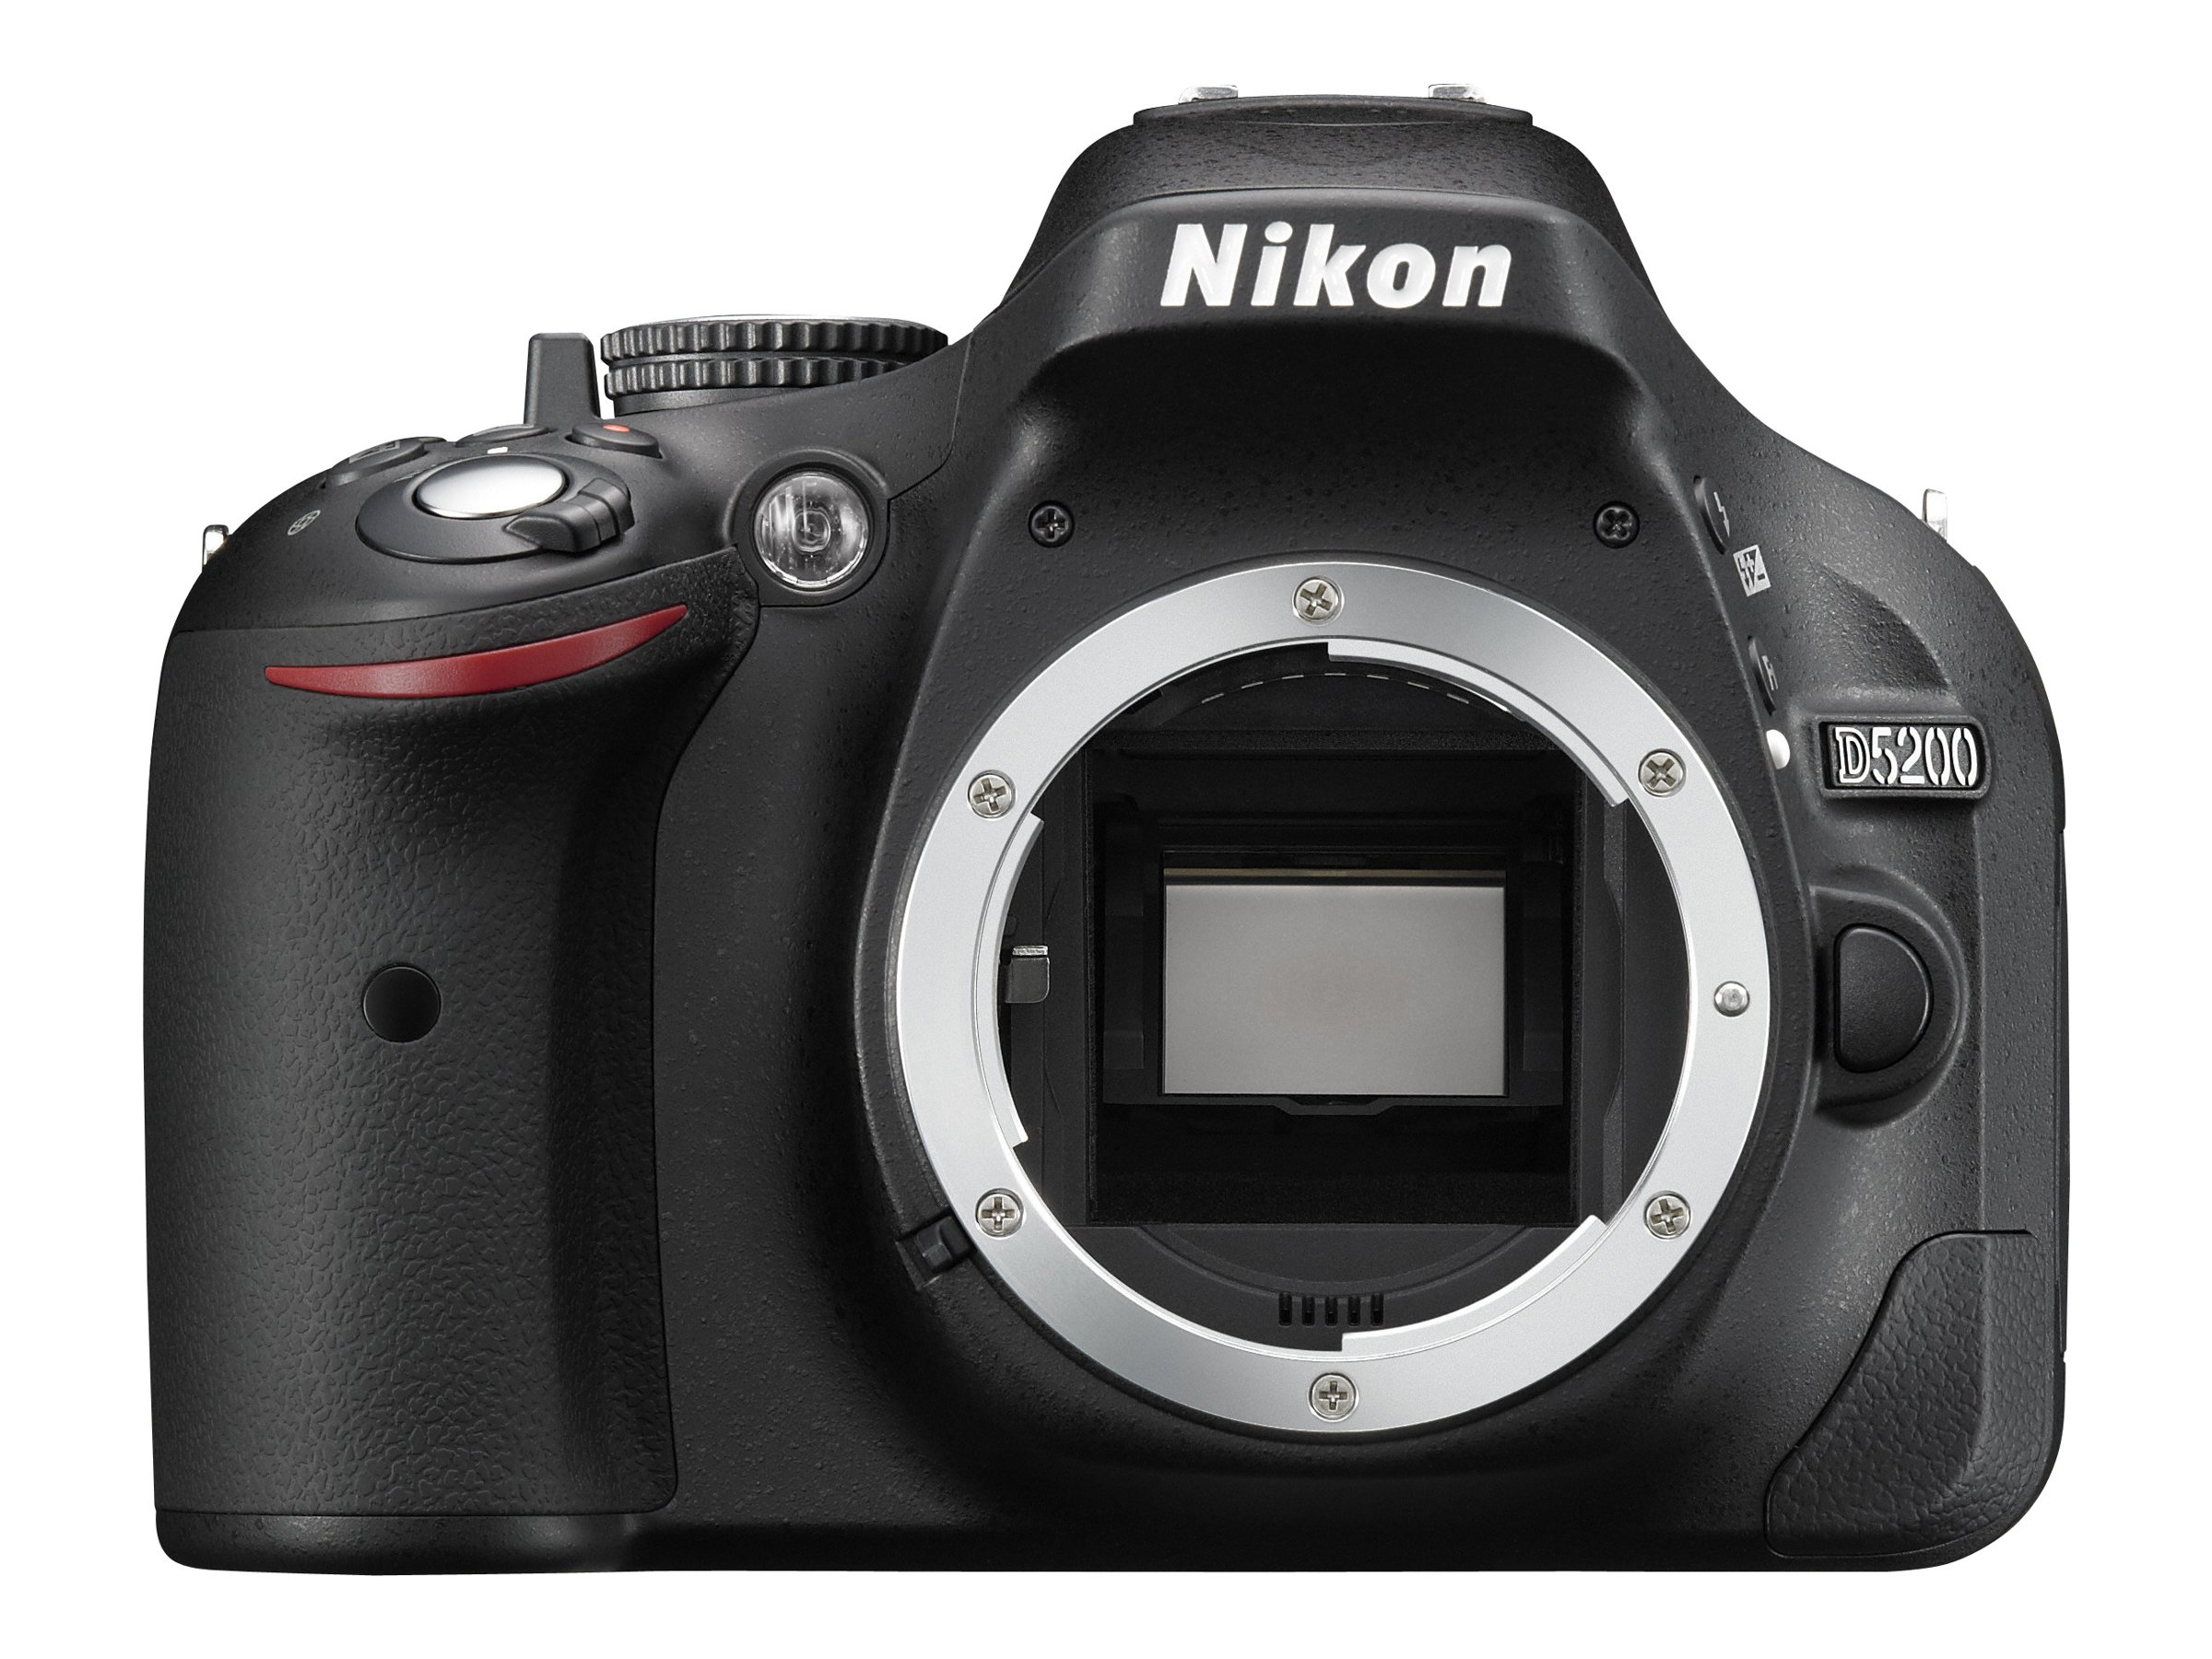 Nikon D5200 Digital SLR Camera, Black (Body Only)